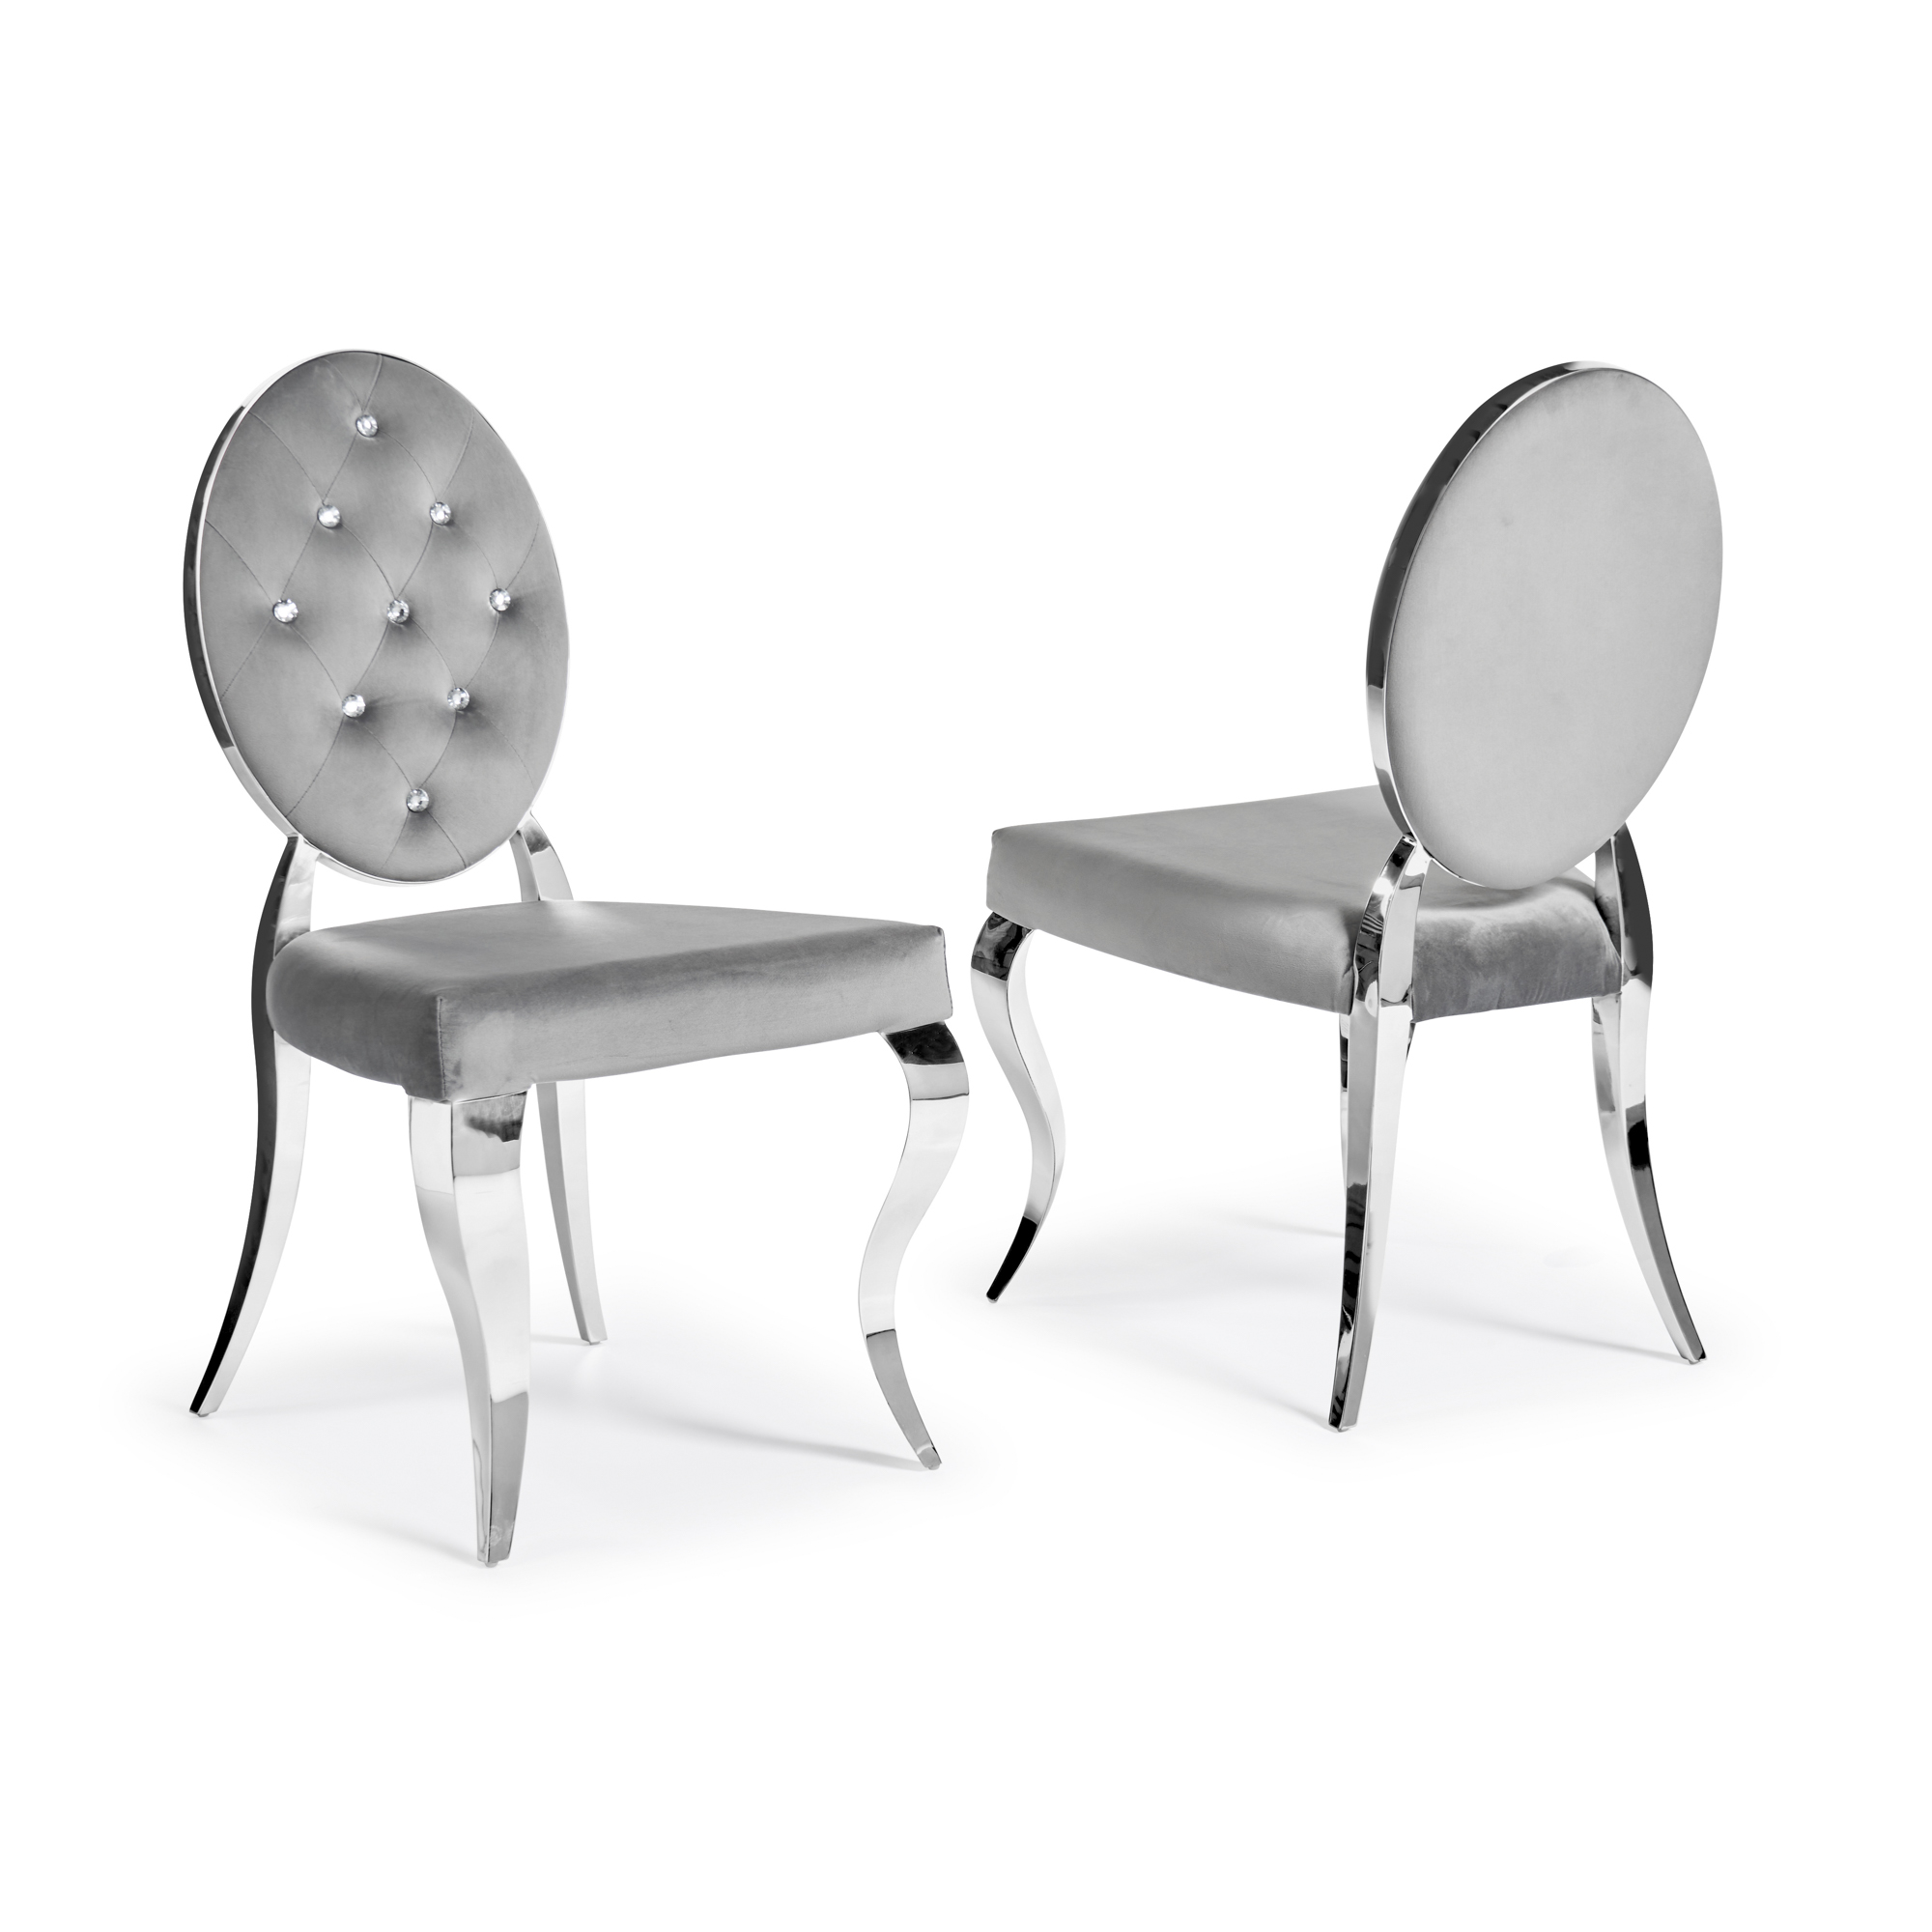 Louis Chrome Grey Velvet Dining Chairs with Diamond Studded Backrest (Set of 2)